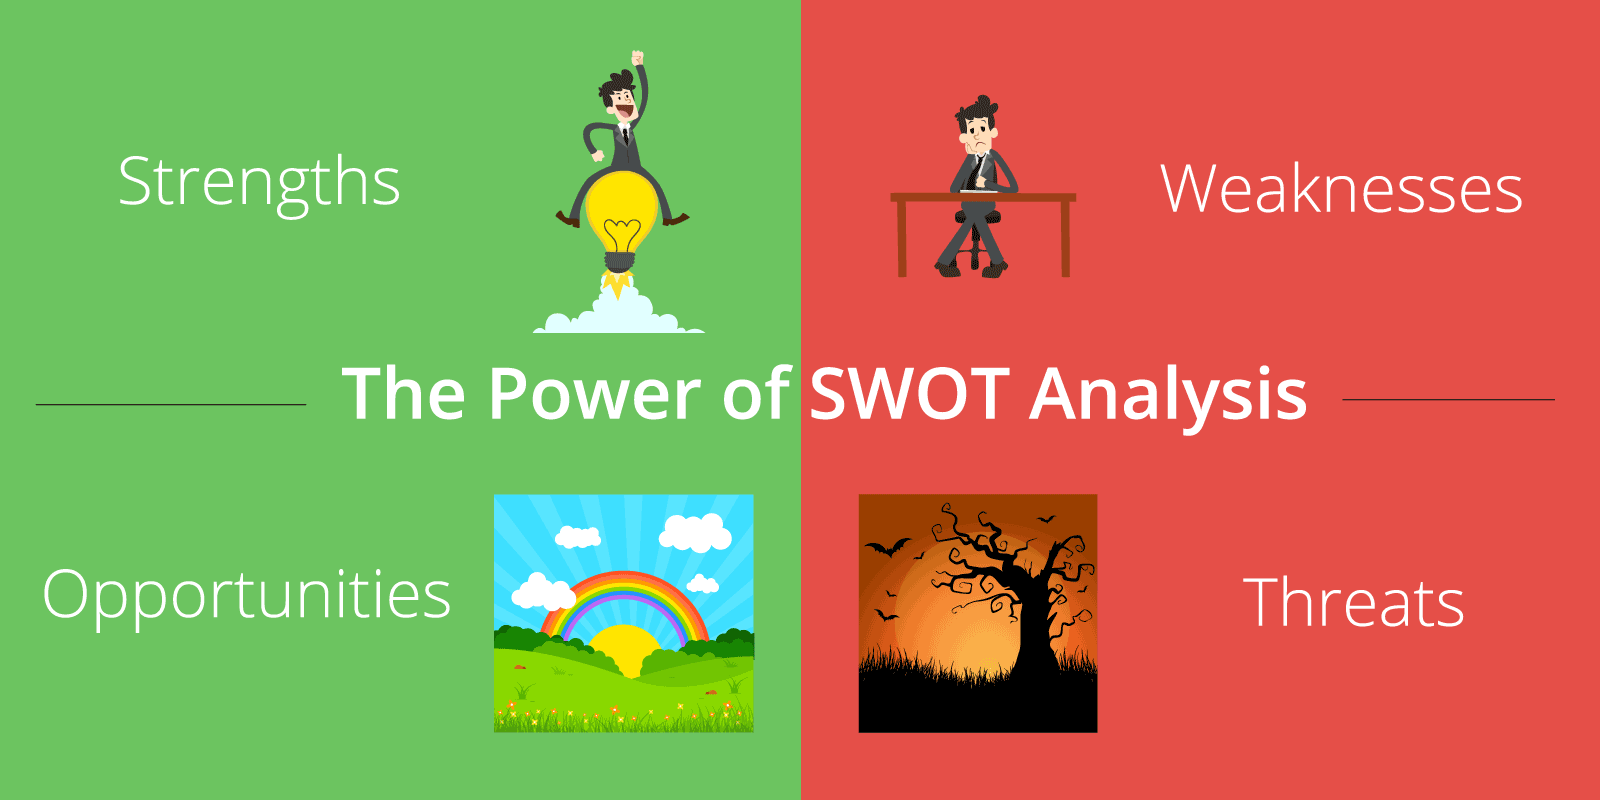 The Power of SWOT Analysis